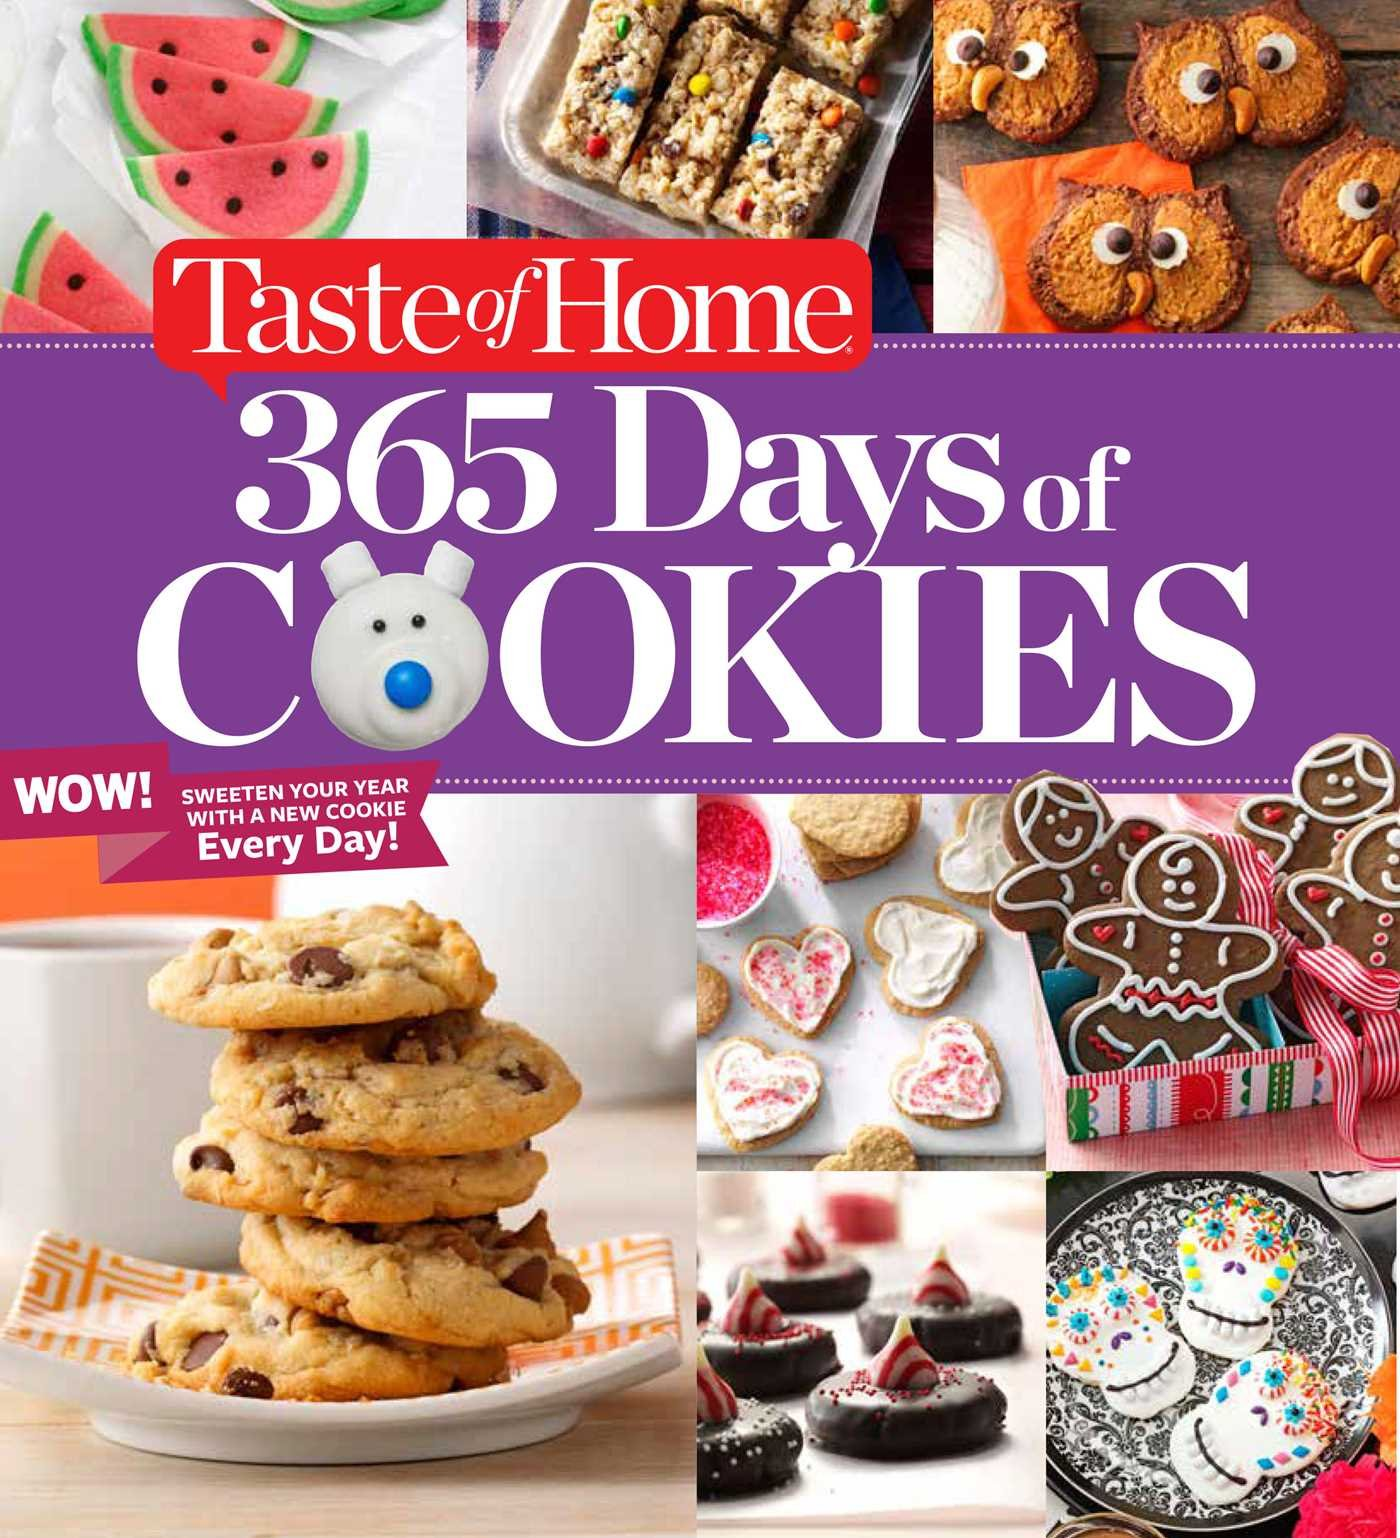 Taste Home 365 Days Cookies product image